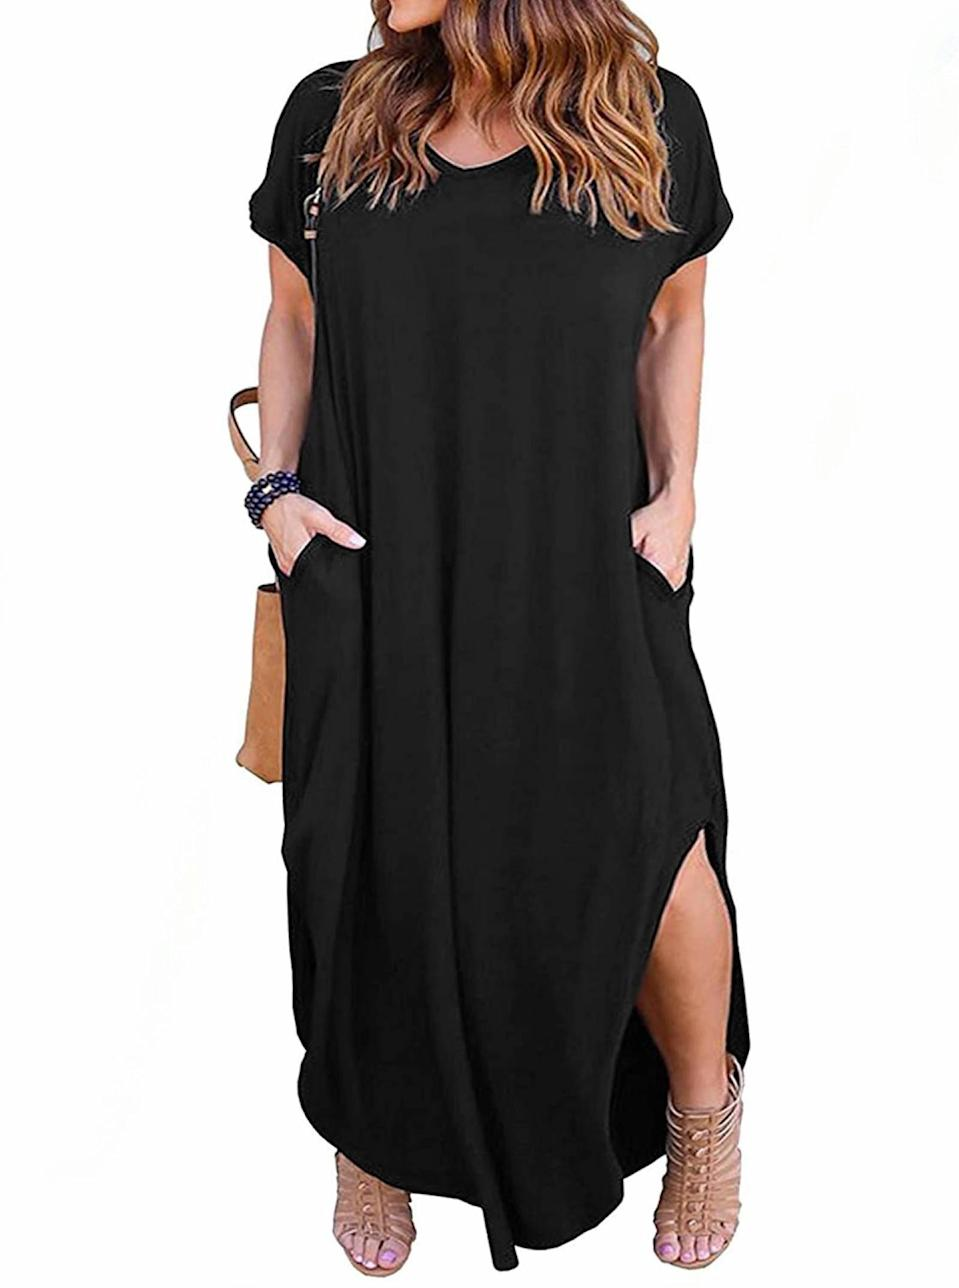 """The ideal low-key look for summertime, when the living is easy. $23, Amazon. <a href=""""https://www.amazon.com/Nemidor-Womens-Casual-Pocket-Sleeve/dp/B07MHC1M6V/"""" rel=""""nofollow noopener"""" target=""""_blank"""" data-ylk=""""slk:Get it now!"""" class=""""link rapid-noclick-resp"""">Get it now!</a>"""